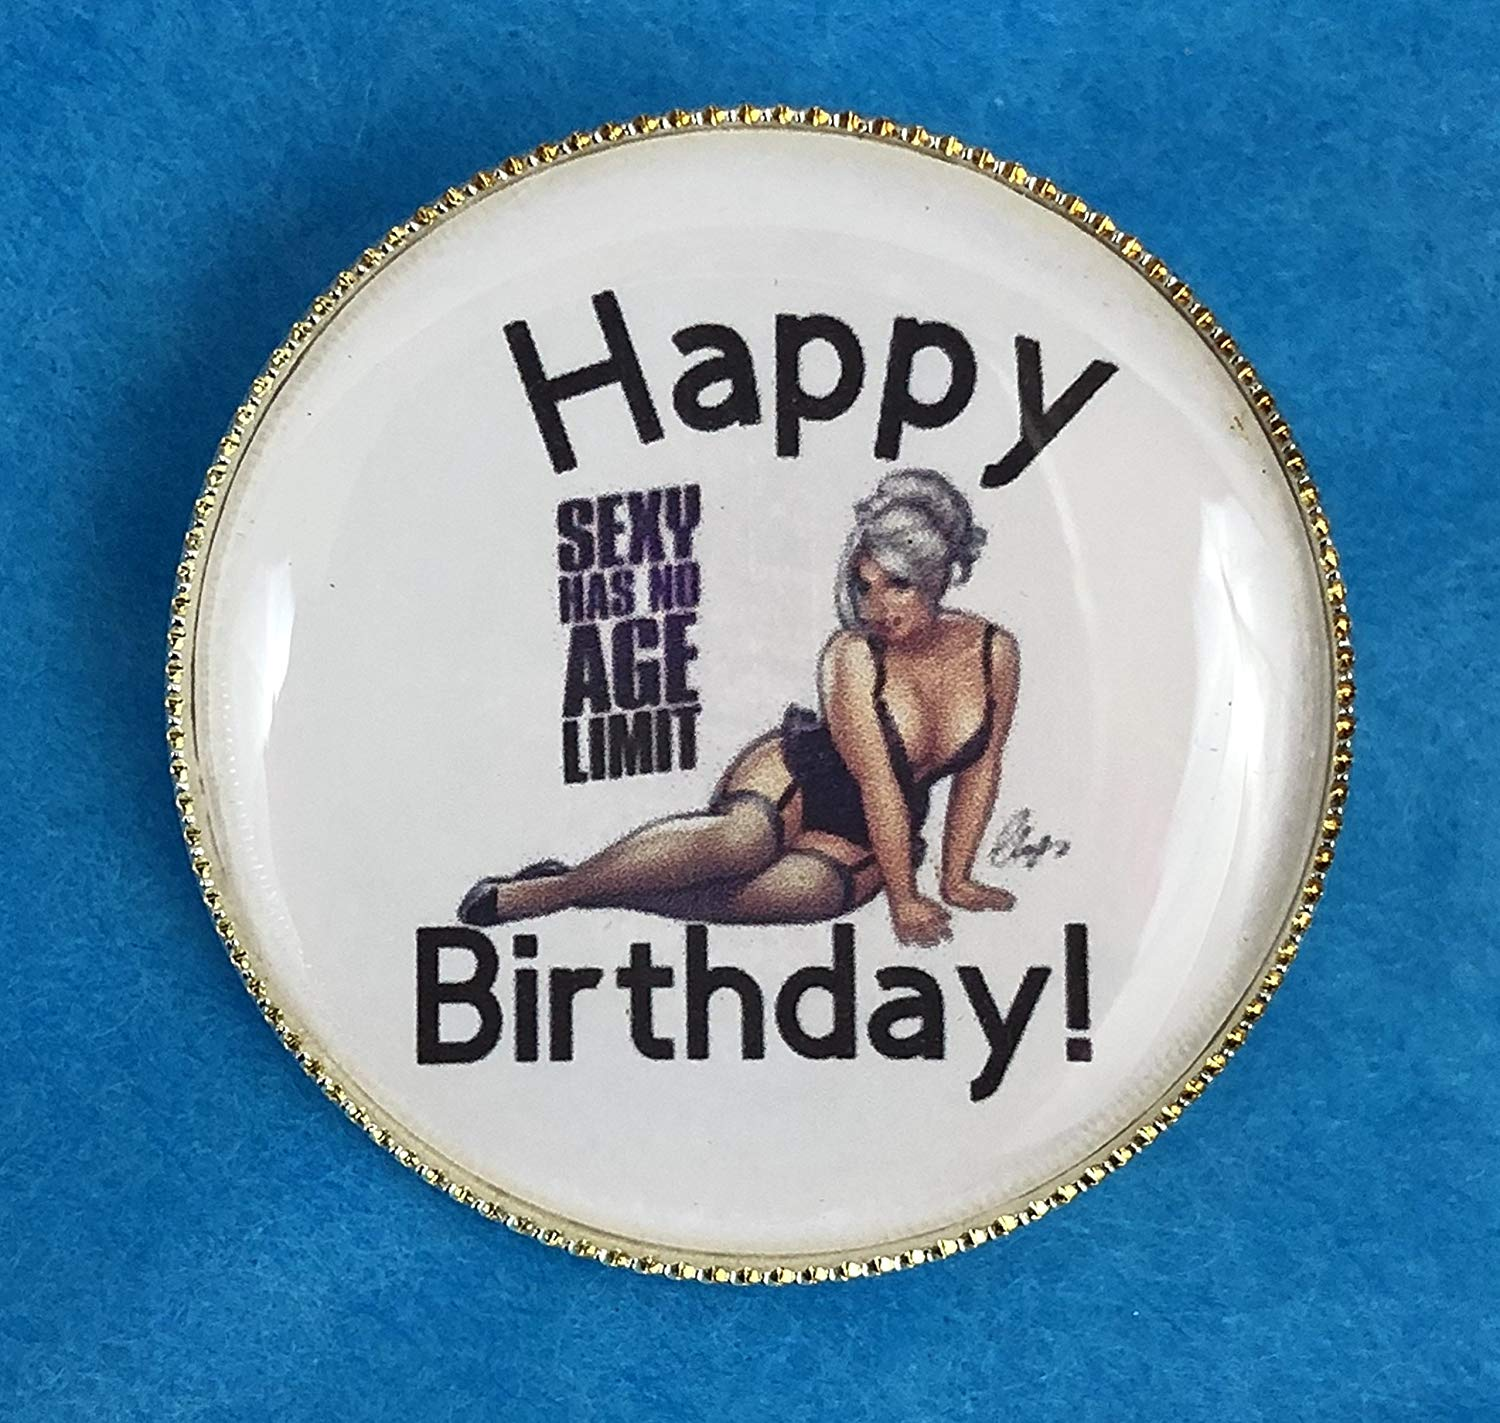 Sexy Has No Age Limit, Happy Birthday, Pin, Badge, New, Gift